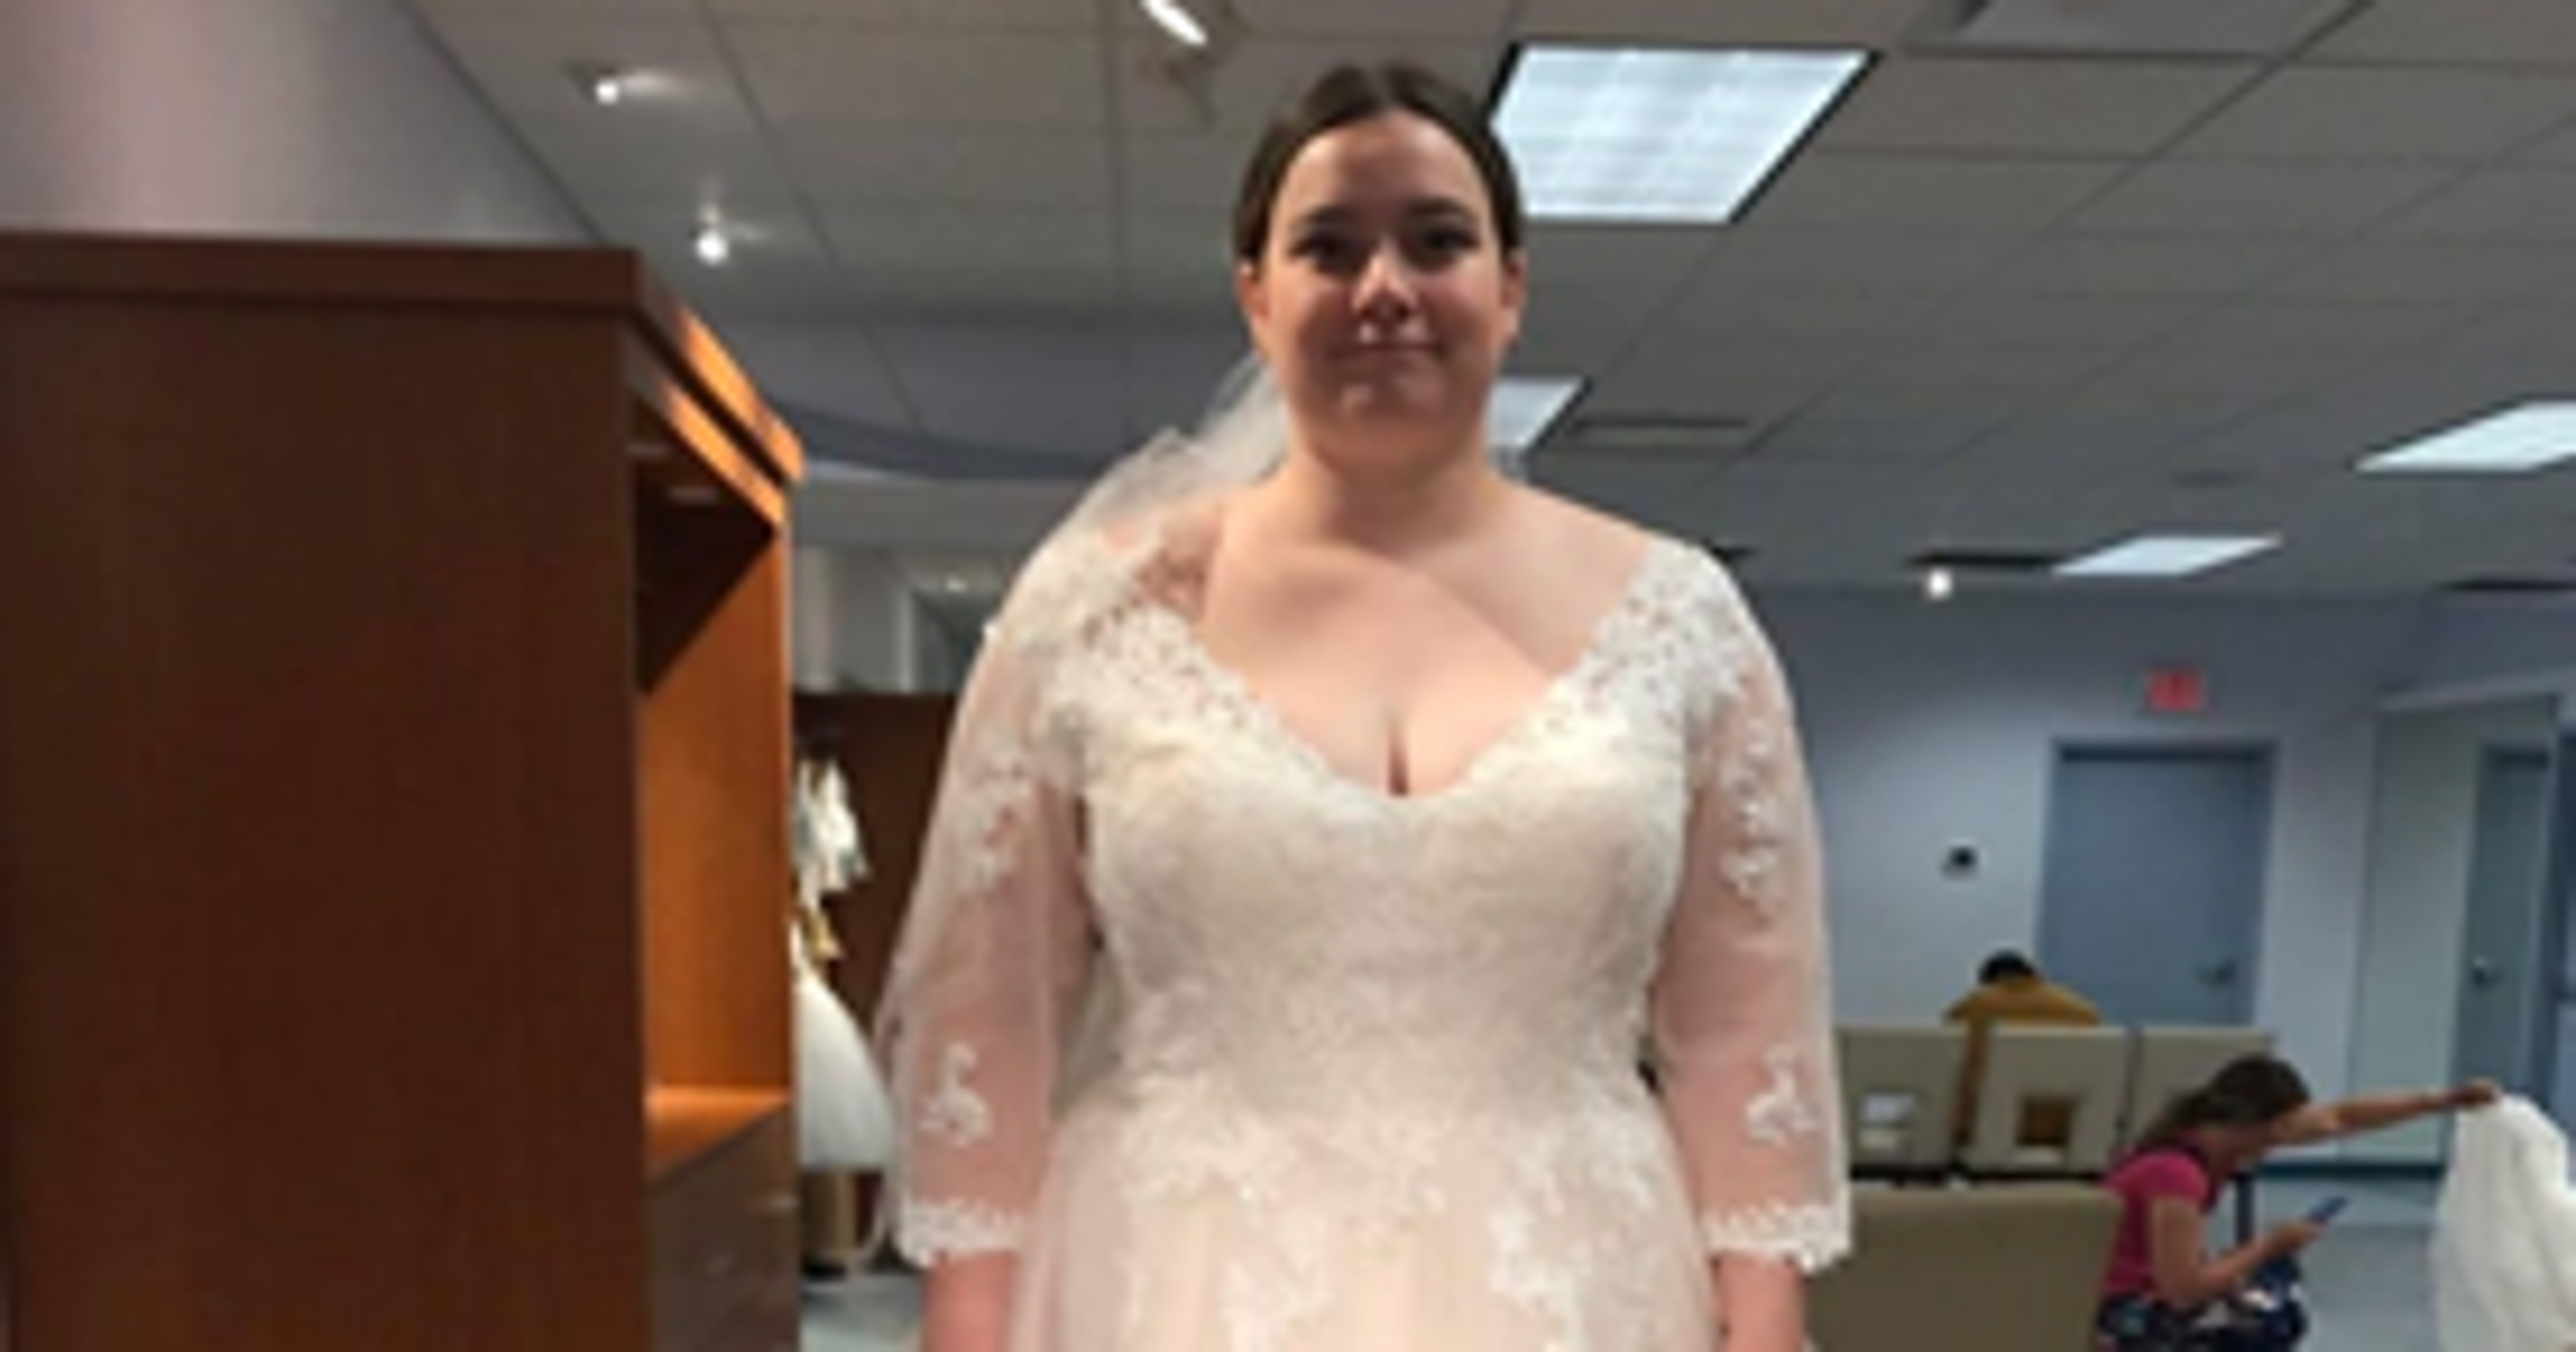 9aaa294c62d92 Michigan bride-to-be at a loss after Alfred Angelo closing